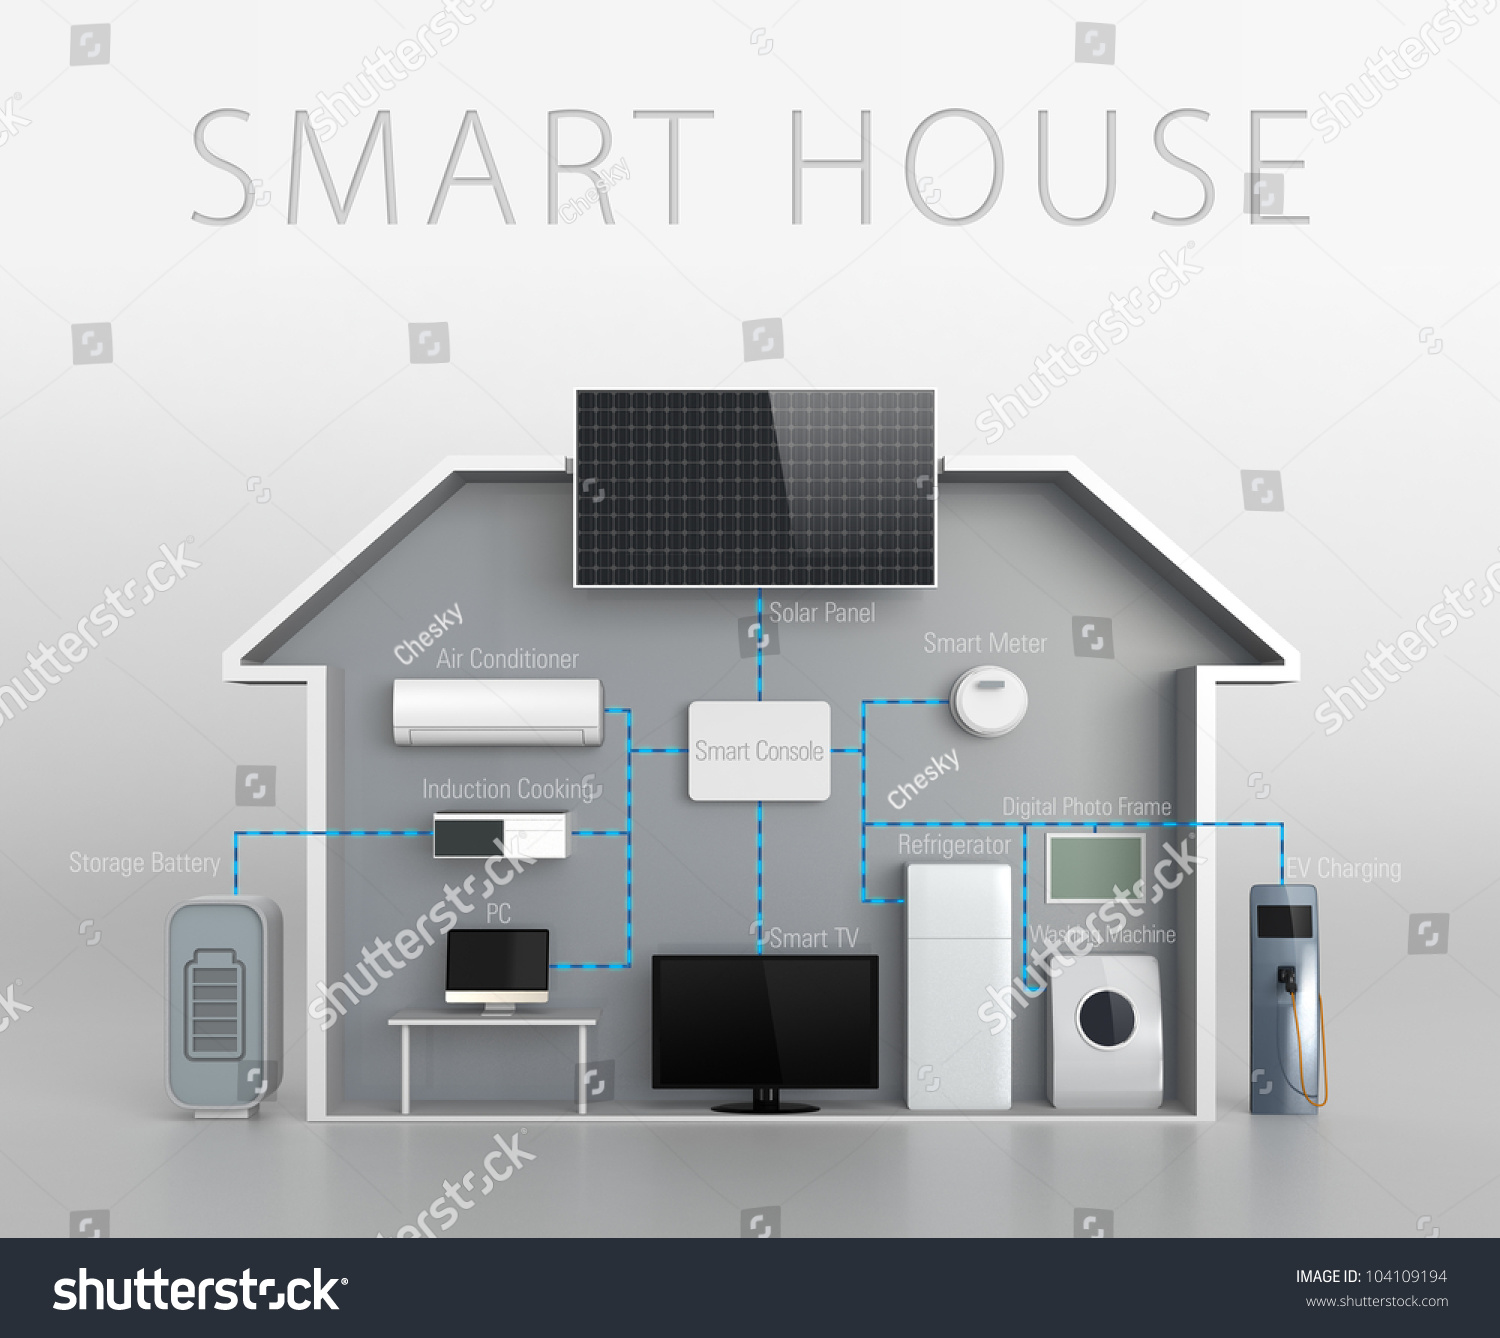 smart house concept text description stock illustration. Black Bedroom Furniture Sets. Home Design Ideas